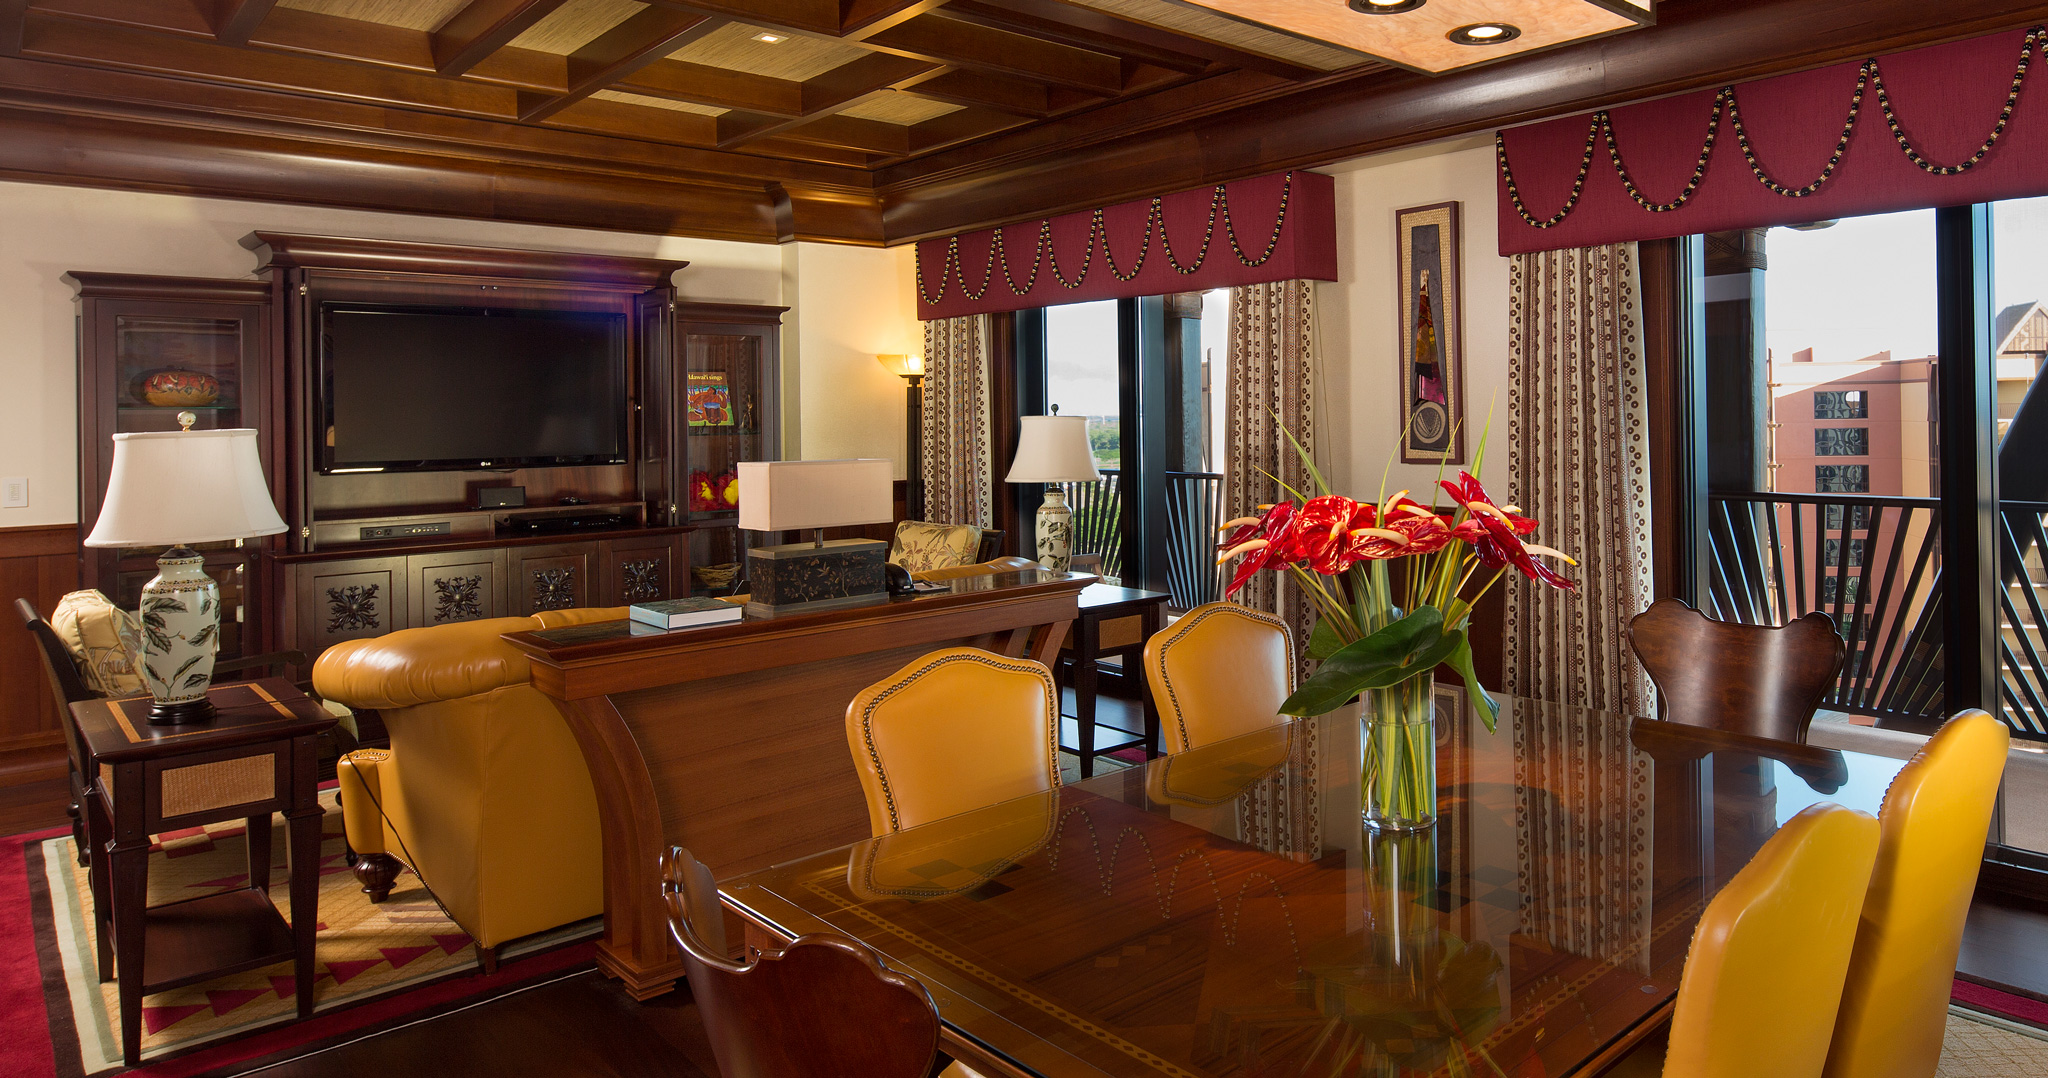 The living area of the 2-Bedroom Suite includes an entertainment center, seating area and dining table